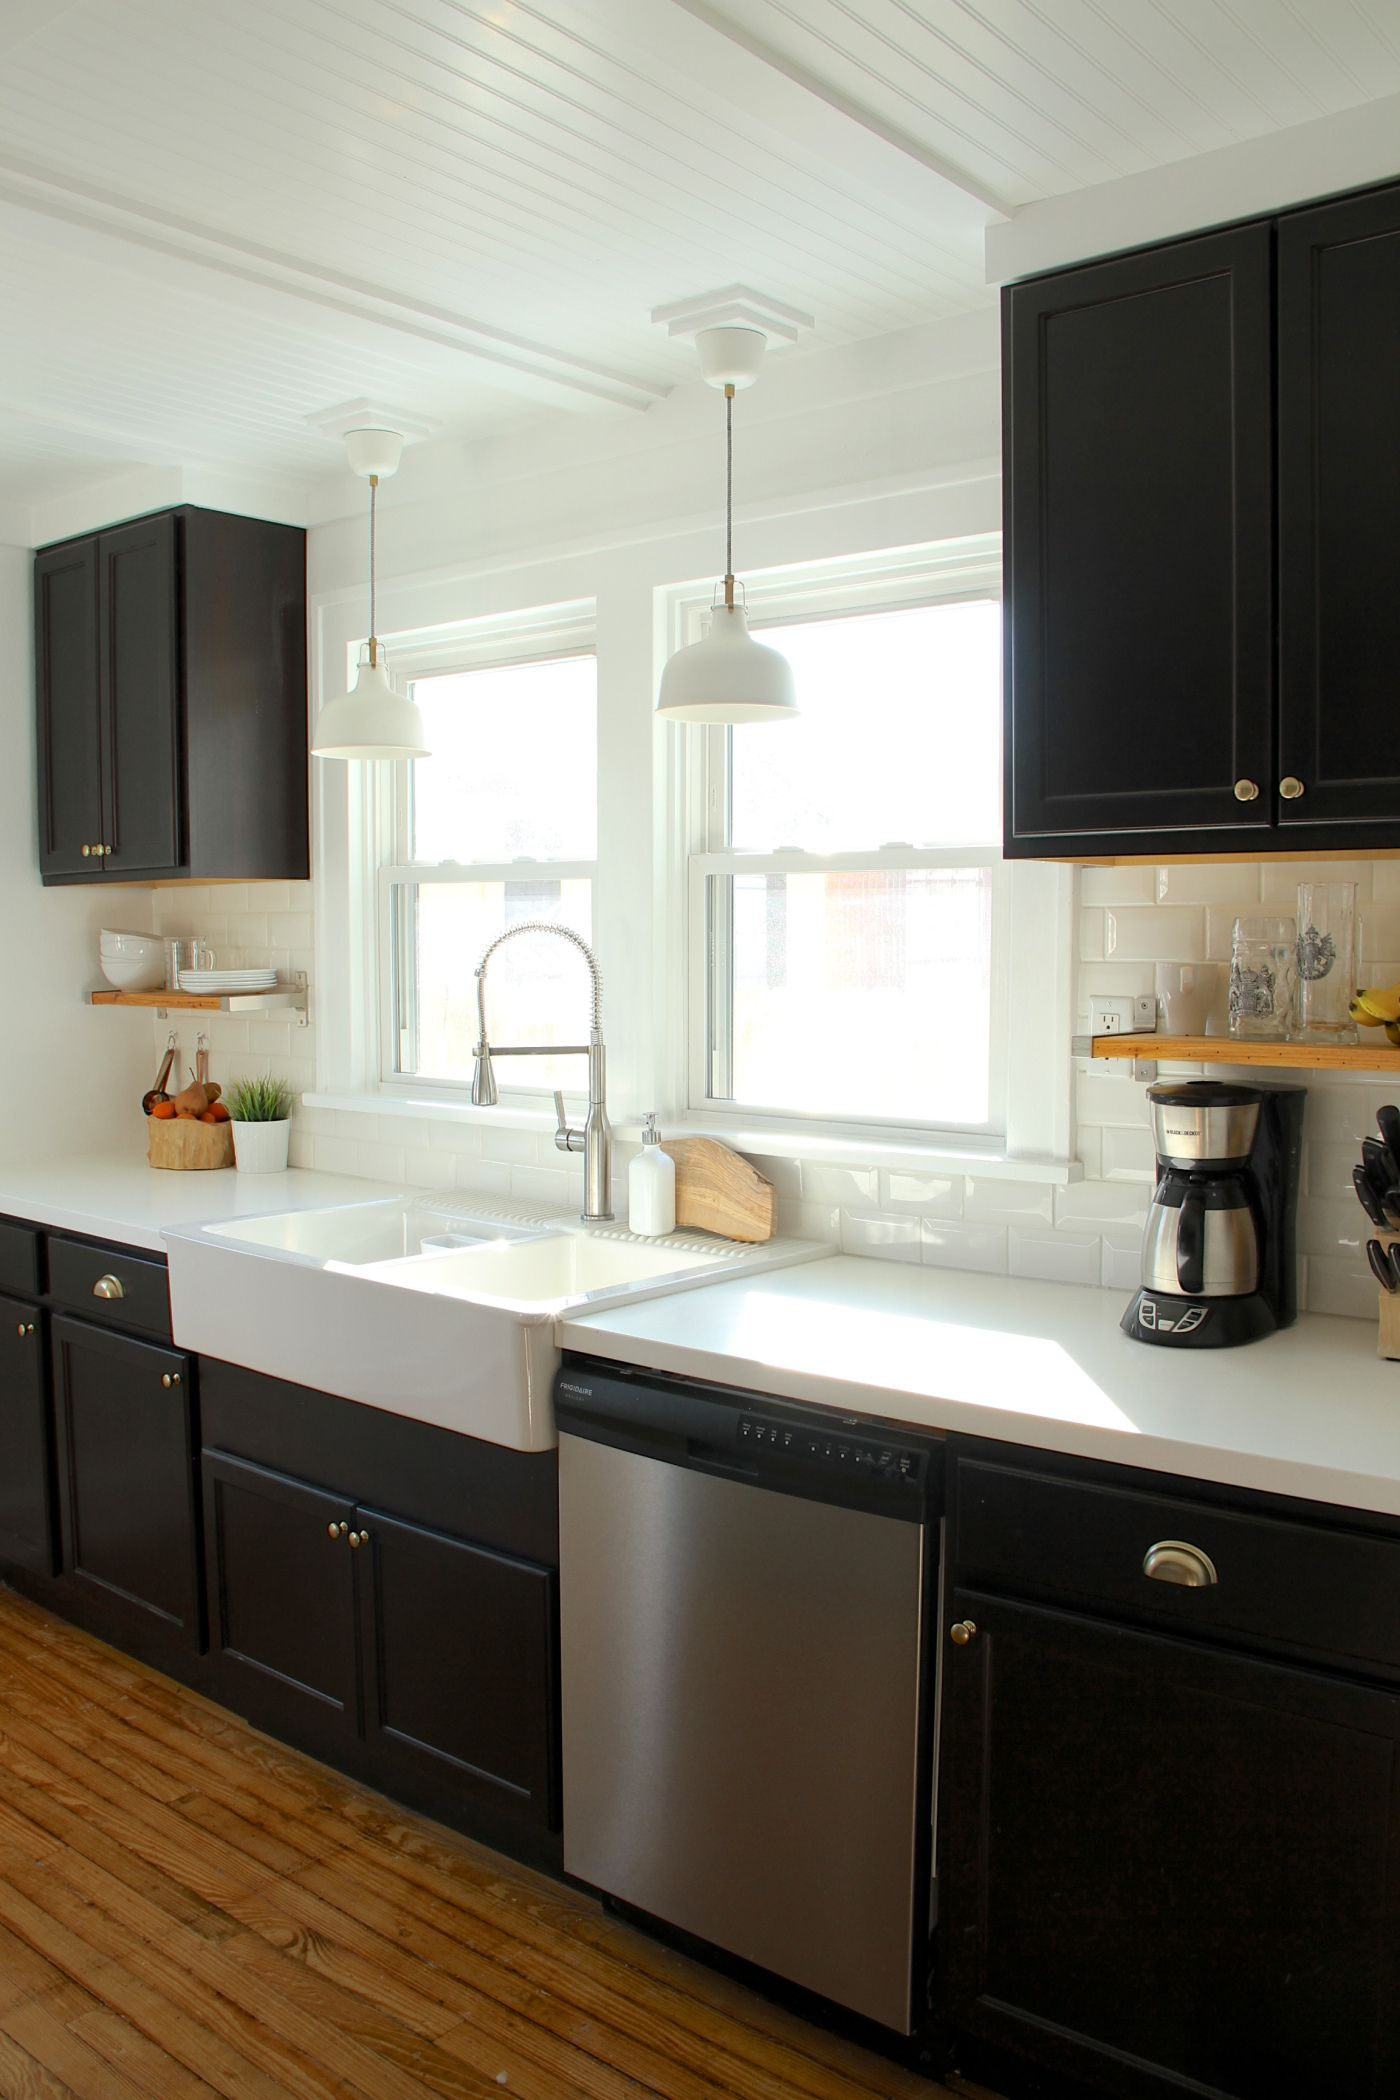 Kitchen Lifestyle Design Online Black Kitchen Cabinets Farmhouse Chic Kitchen Black Kitchens